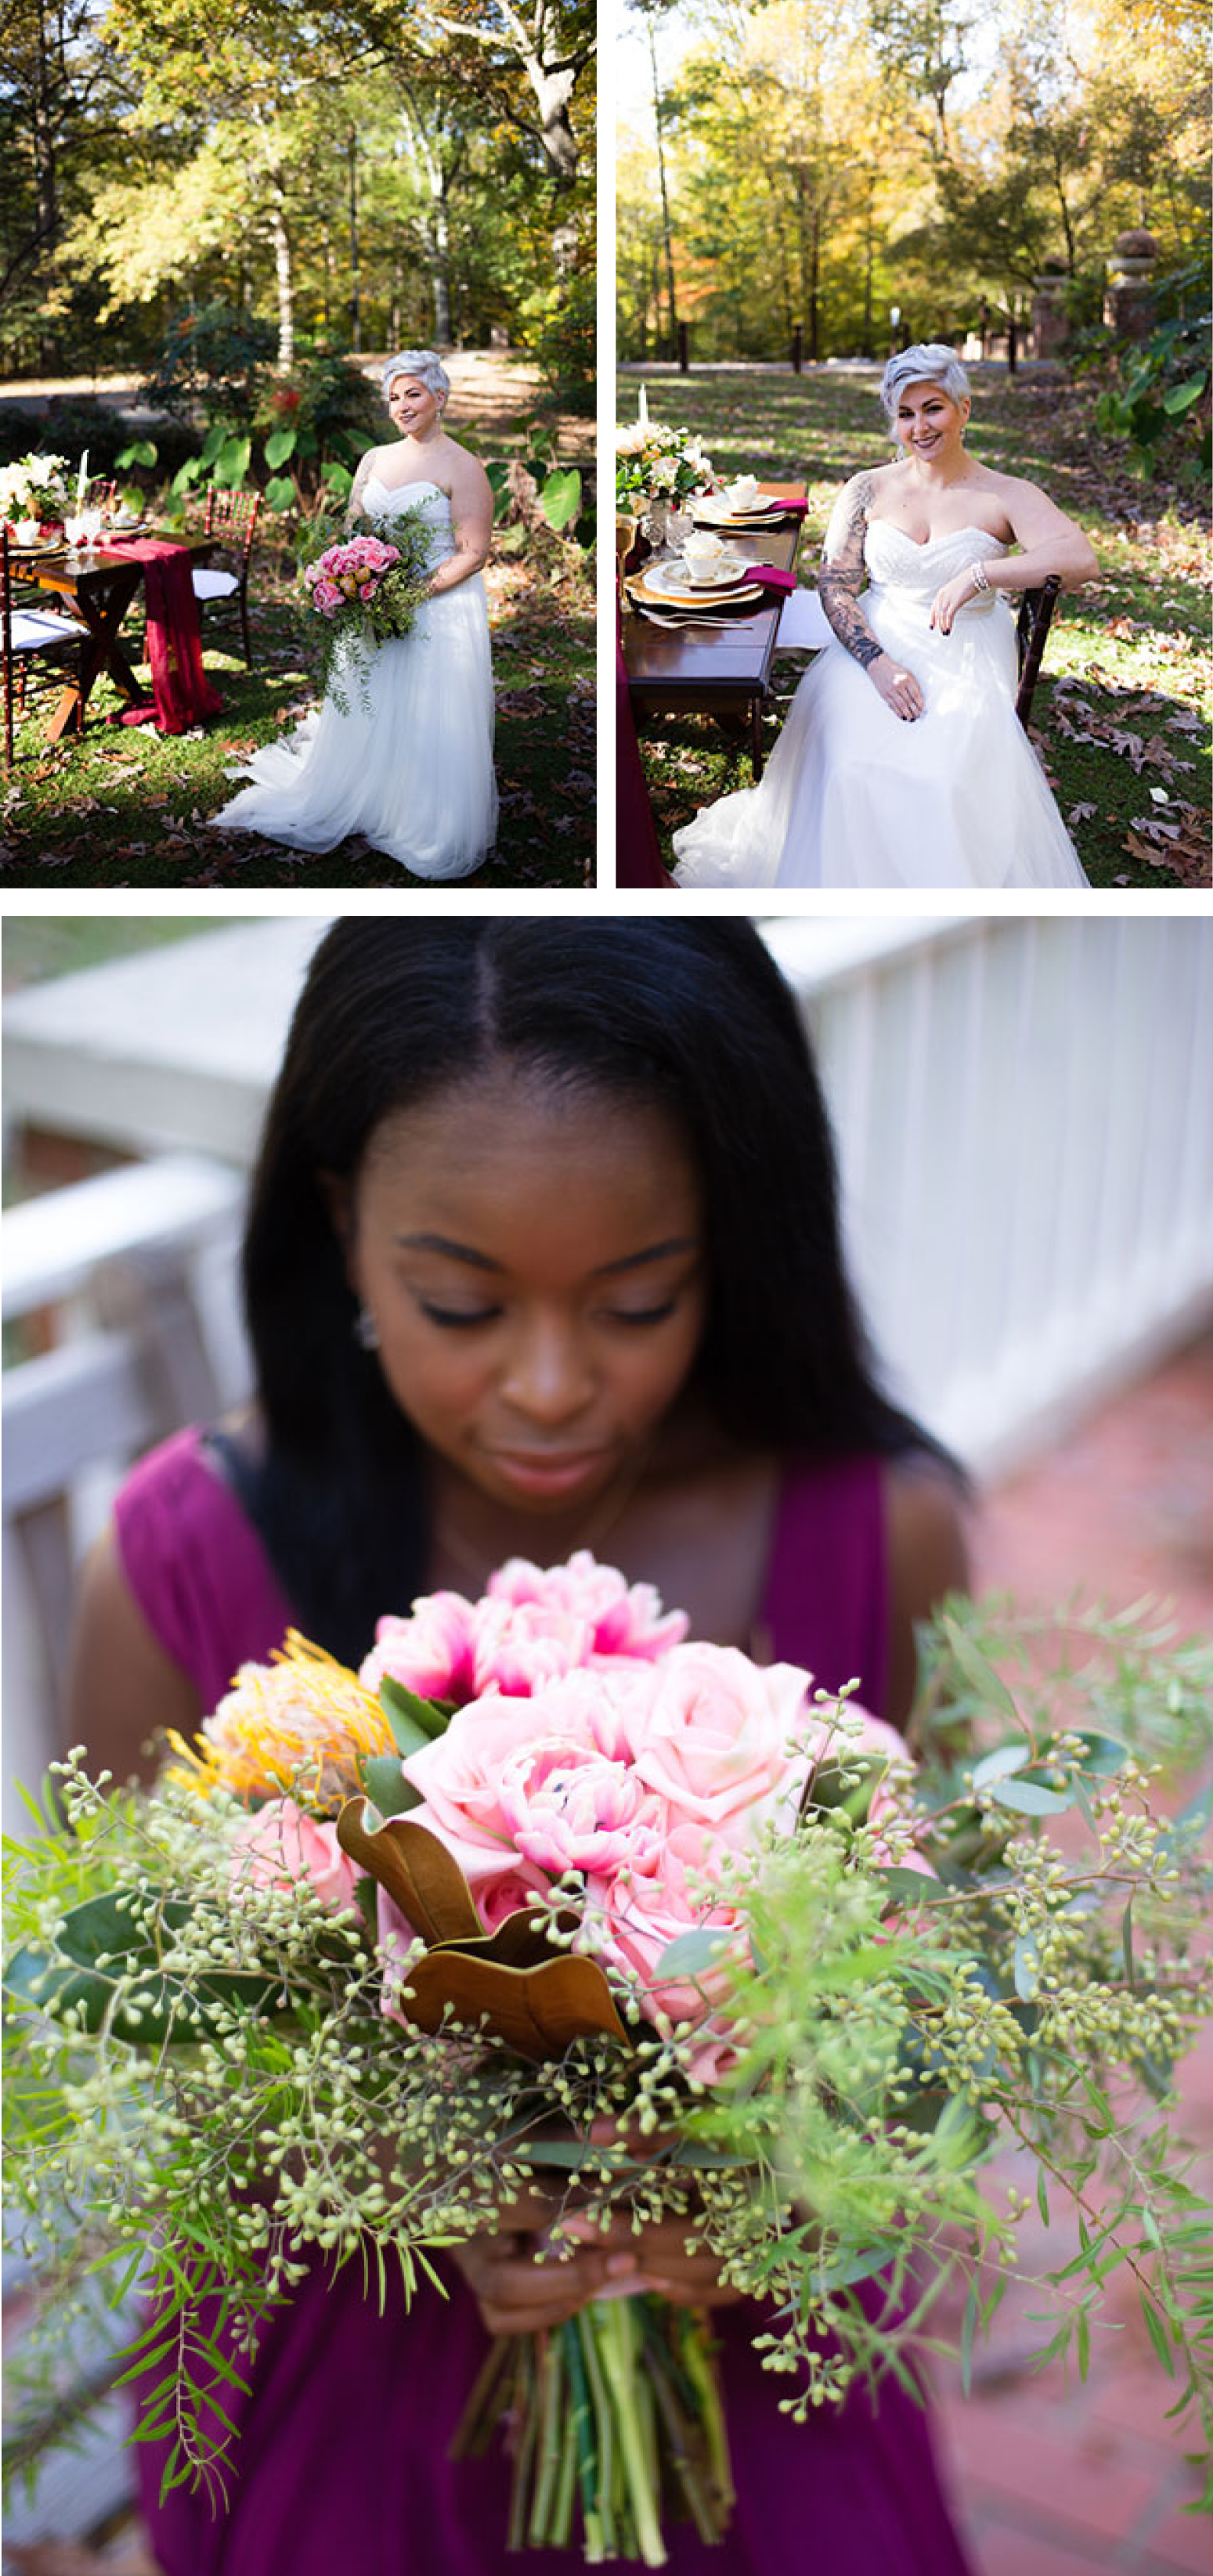 Raspberry-and-Gold-Vow-Renewal_Styled-Shoot-DC-Wedding8.jpg